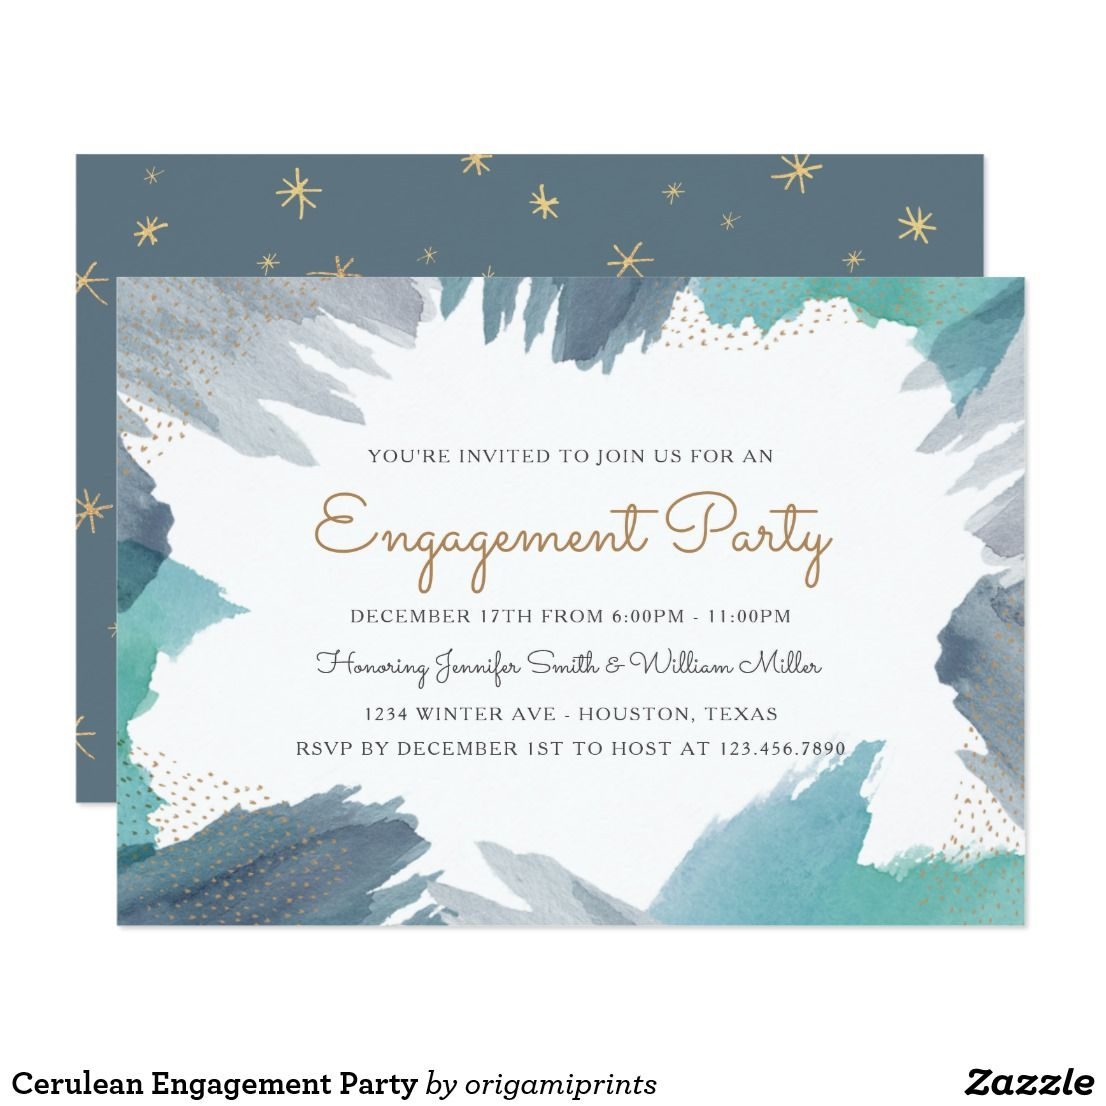 Cerulean Engagement Party Card | Engagement Party Invites ...